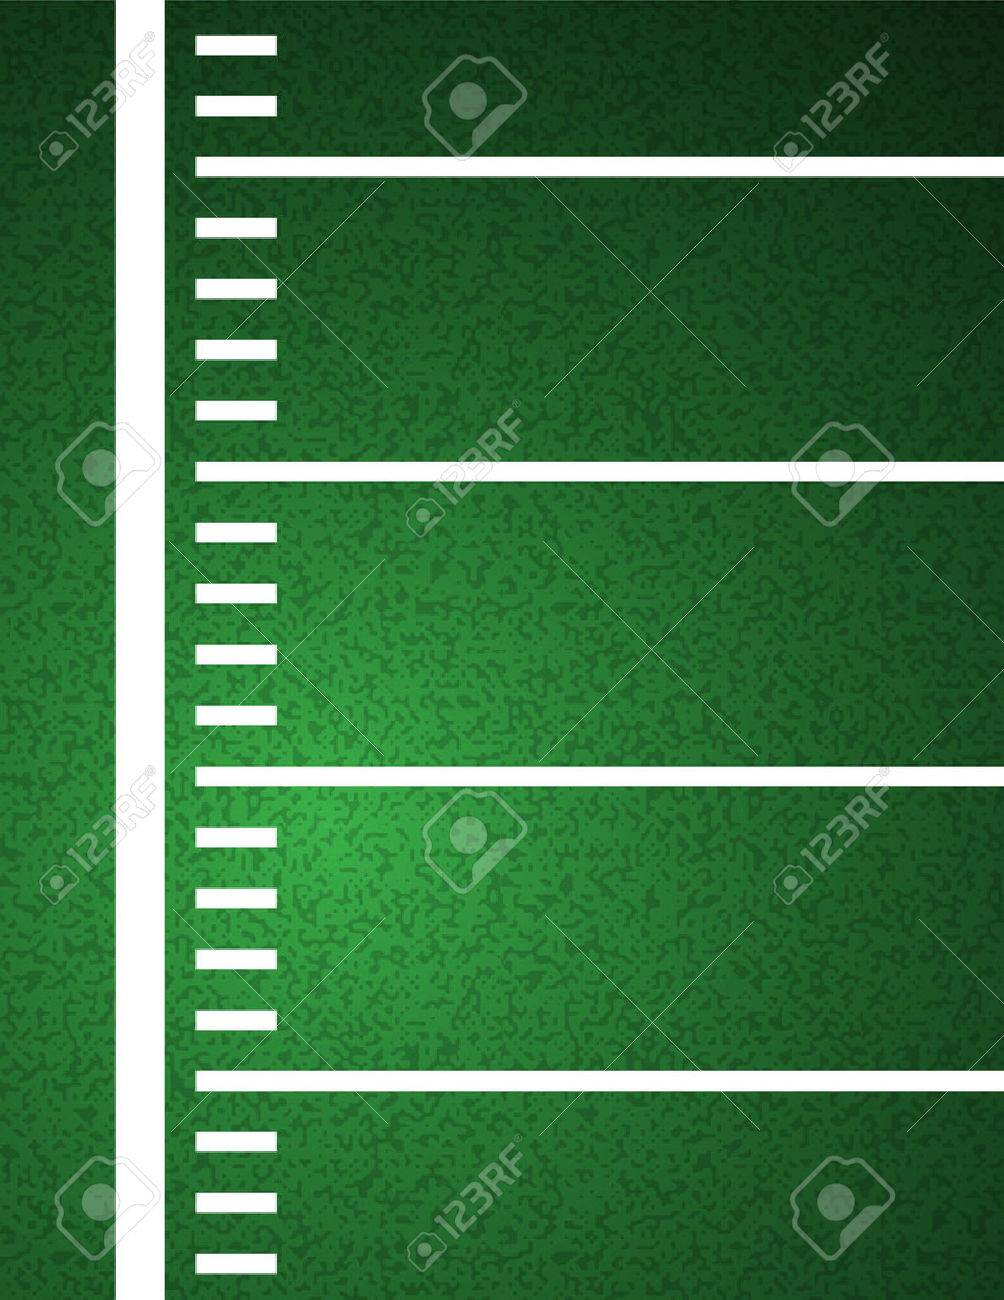 An American Football field sideline and yardline textured field background illustration. - 51394590